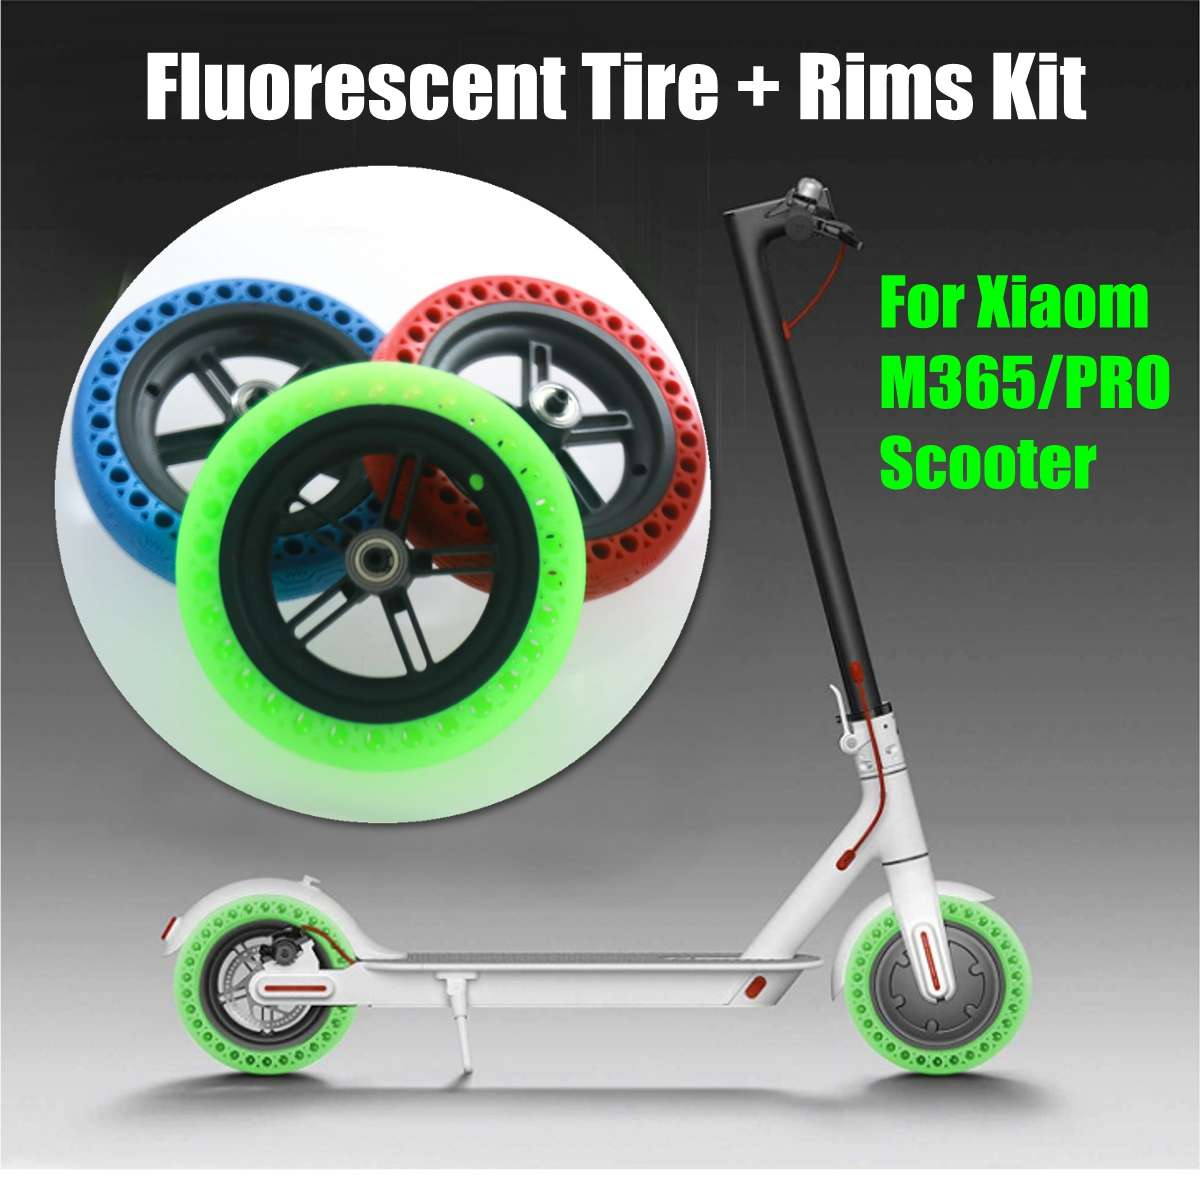 Luminous Fluorescent Hollow Solid Wheel Tyre Tires for Xiaomi Mijia M365 Scooter